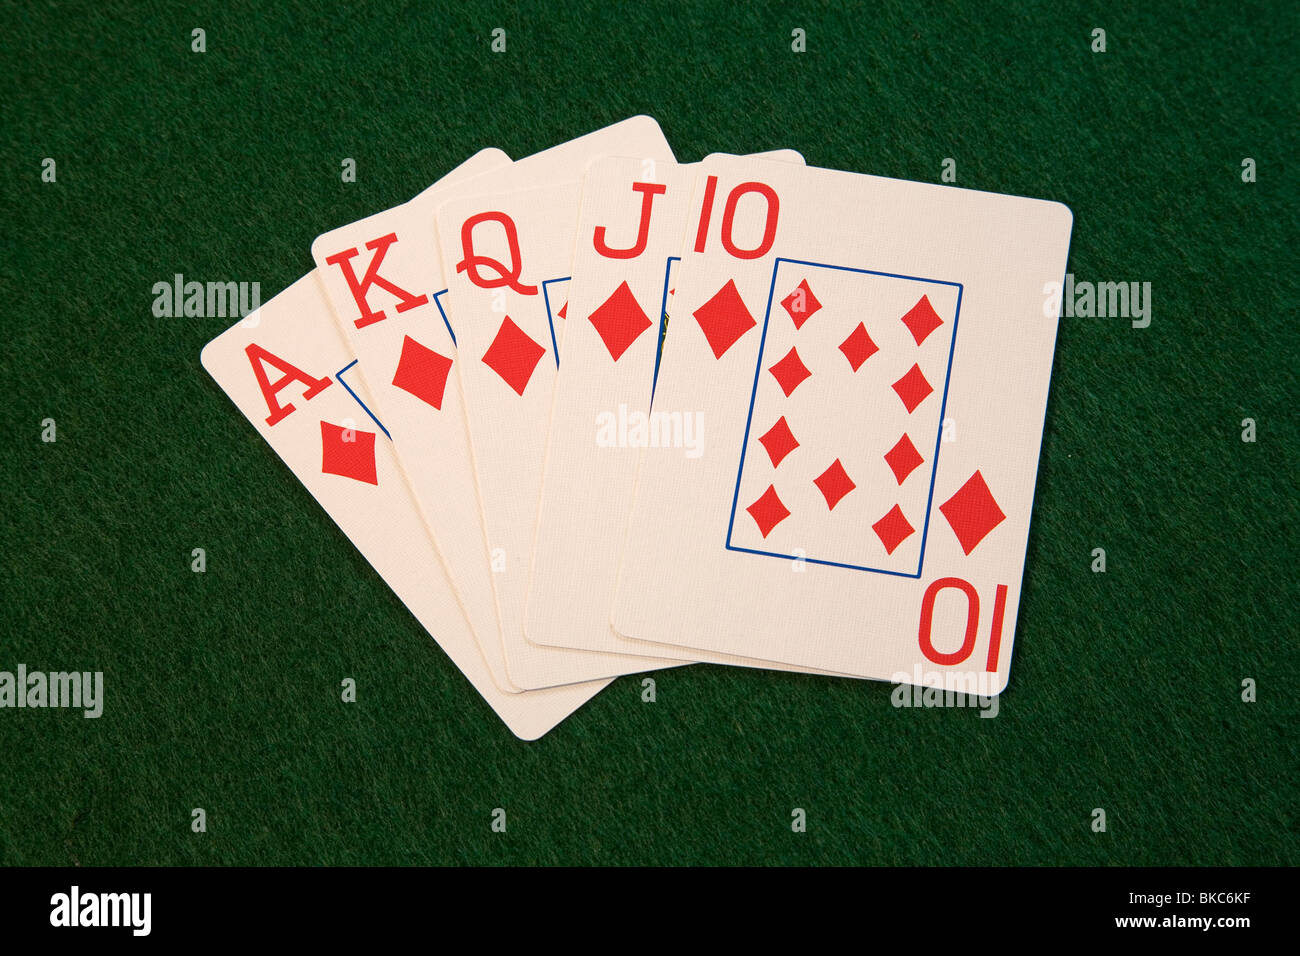 A diamond royal flush poker hand in five card draw or stud poker - Stock Image